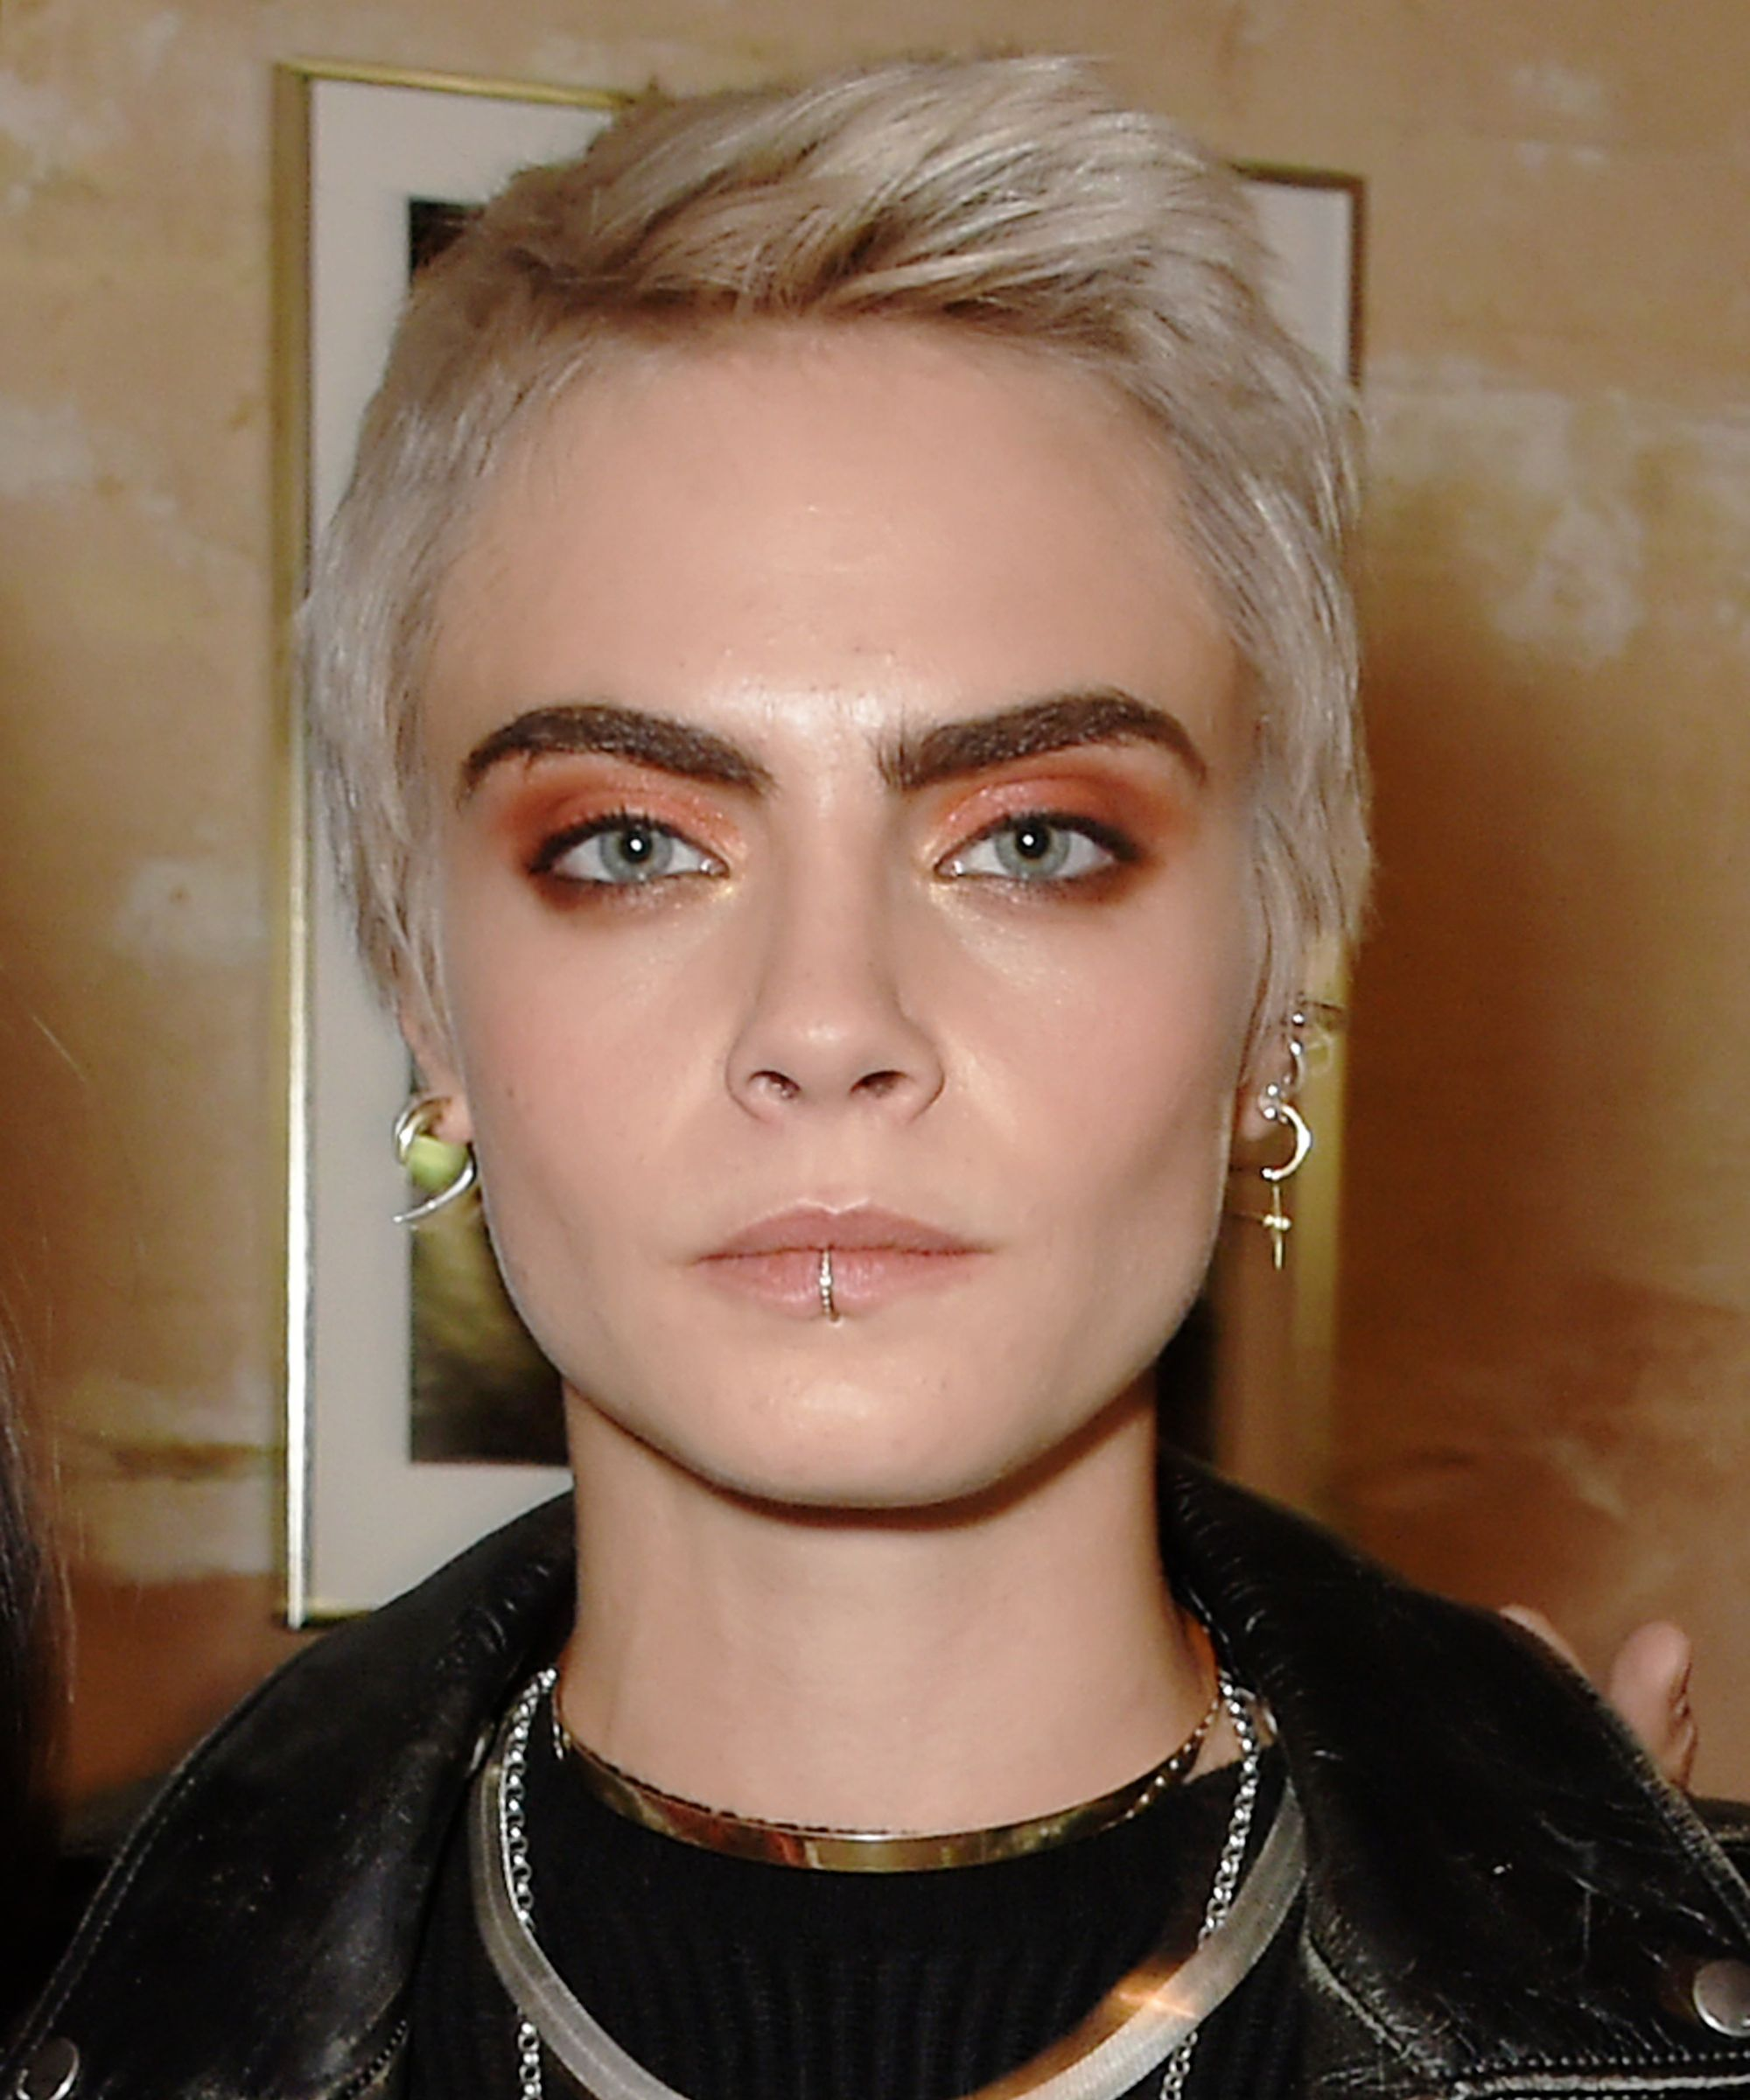 Cara Delevingne Is Now A Brunette For The First Time In 3 Years Refinery29 Cara Delevingne Hair Short Hair Styles Mens Hairstyles